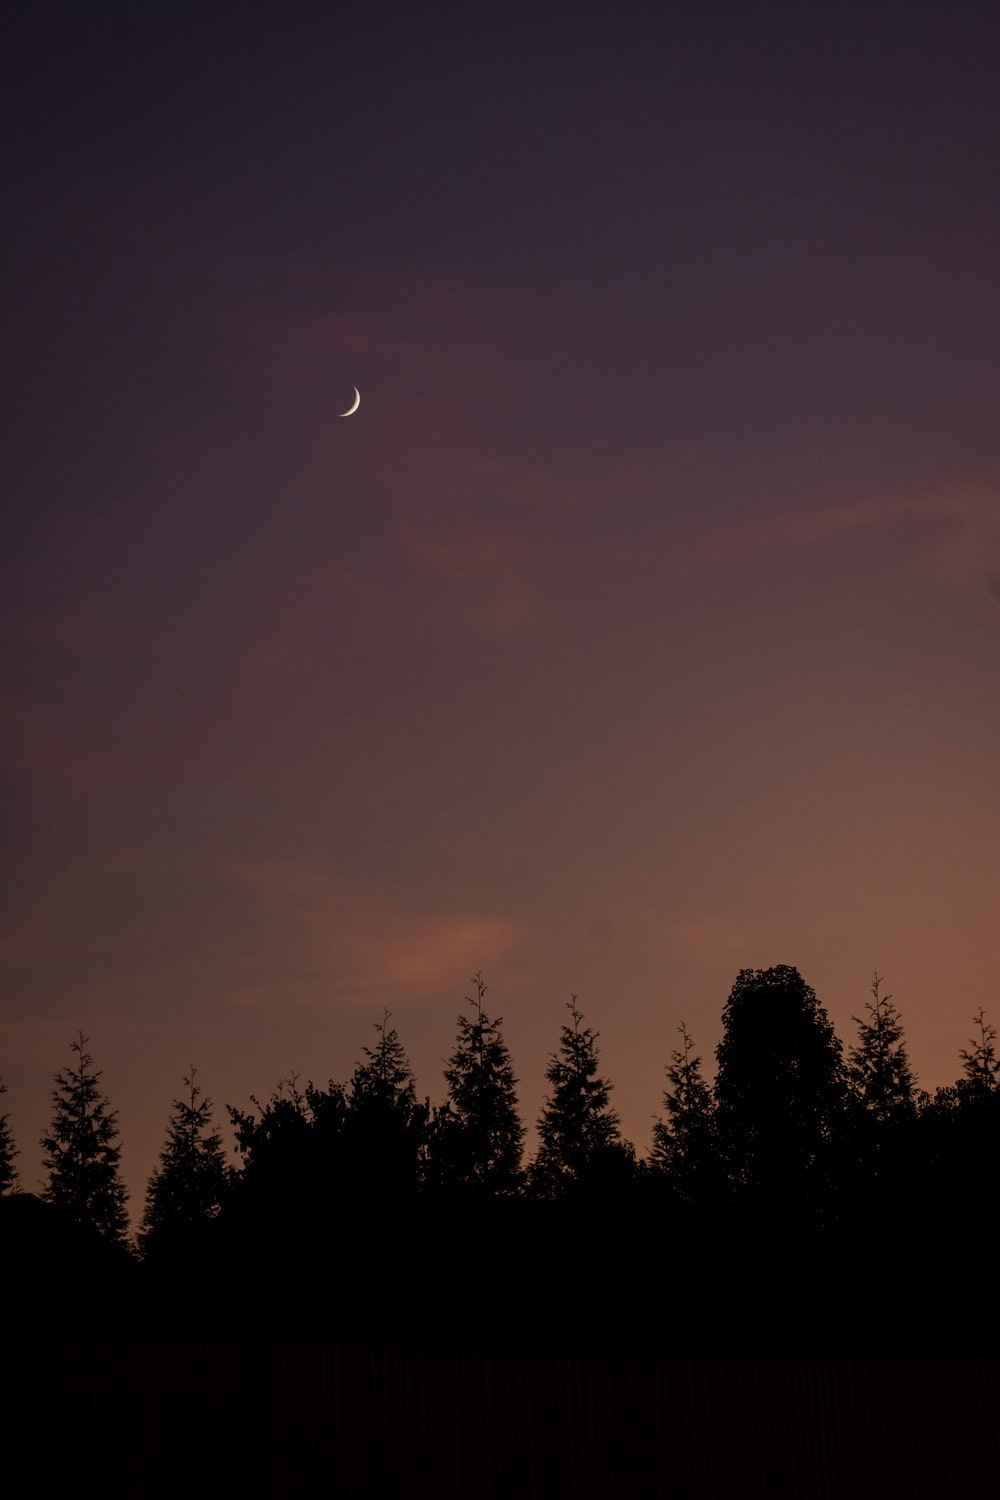 crescent moon at sunset sky